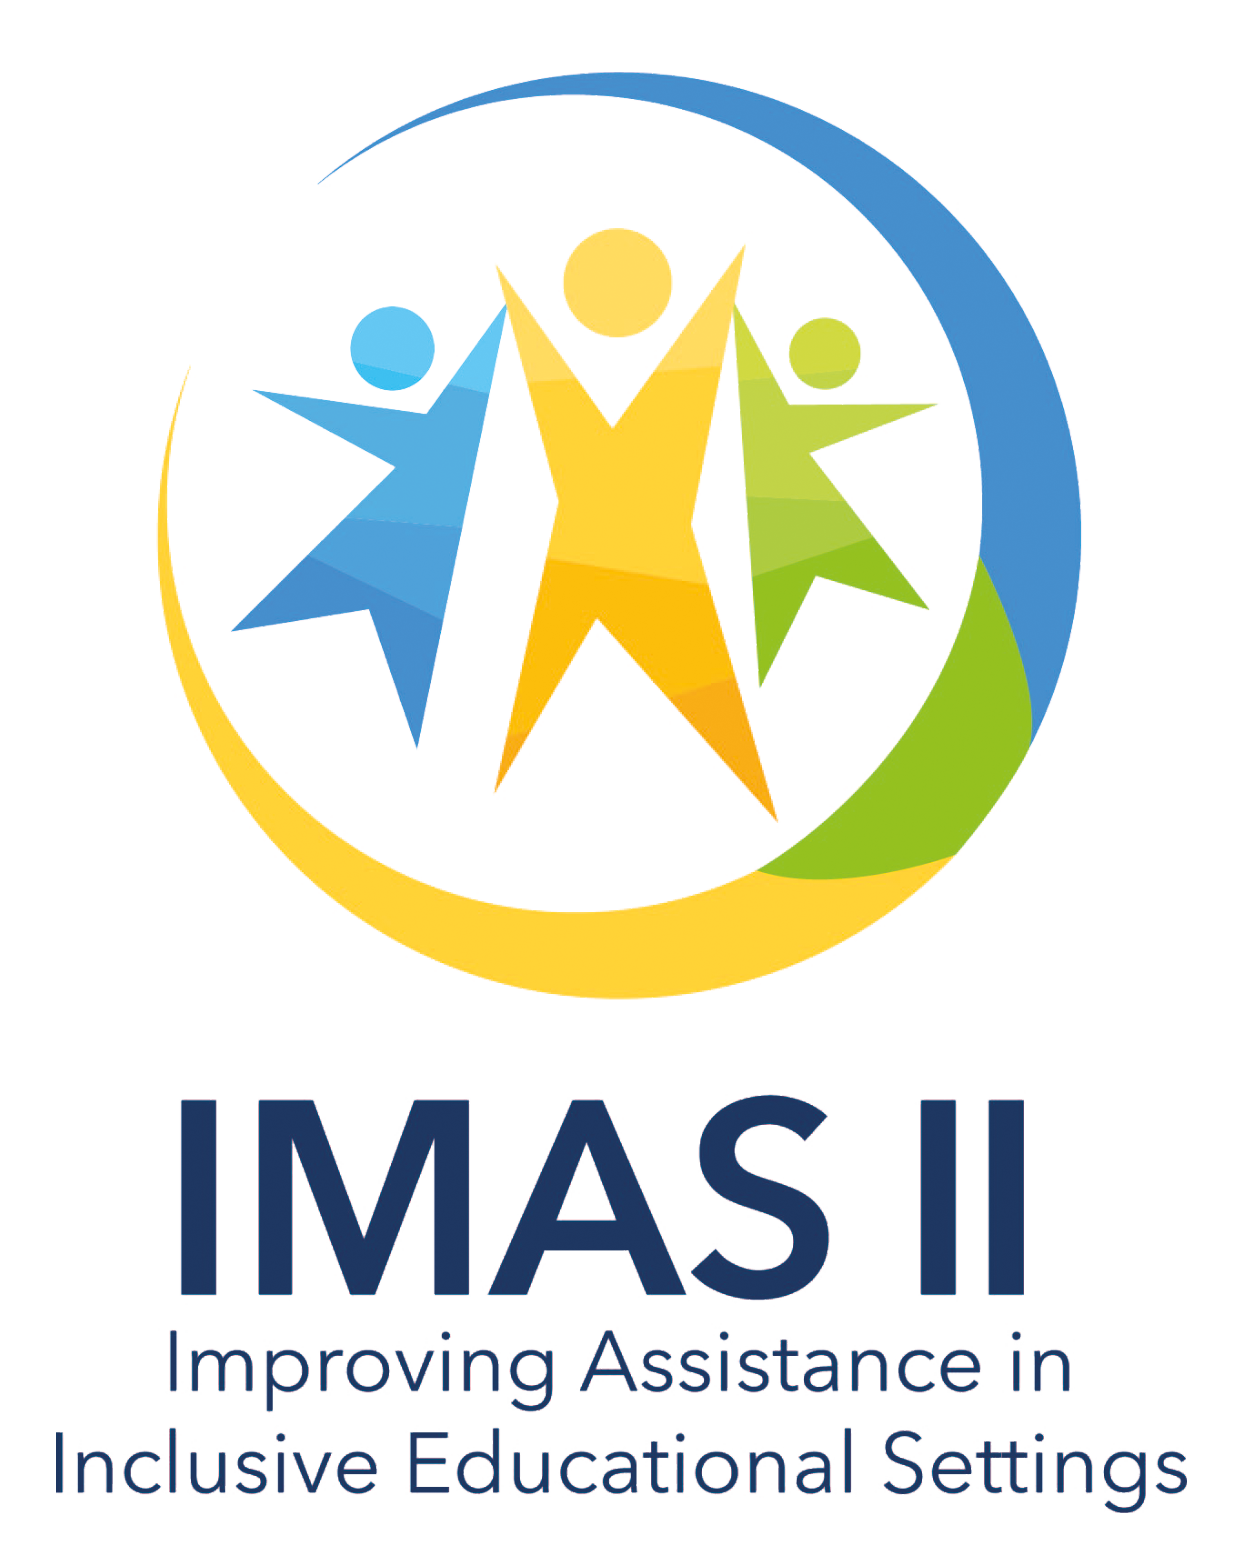 Improving Assistance in Inclusive Educational Settings.